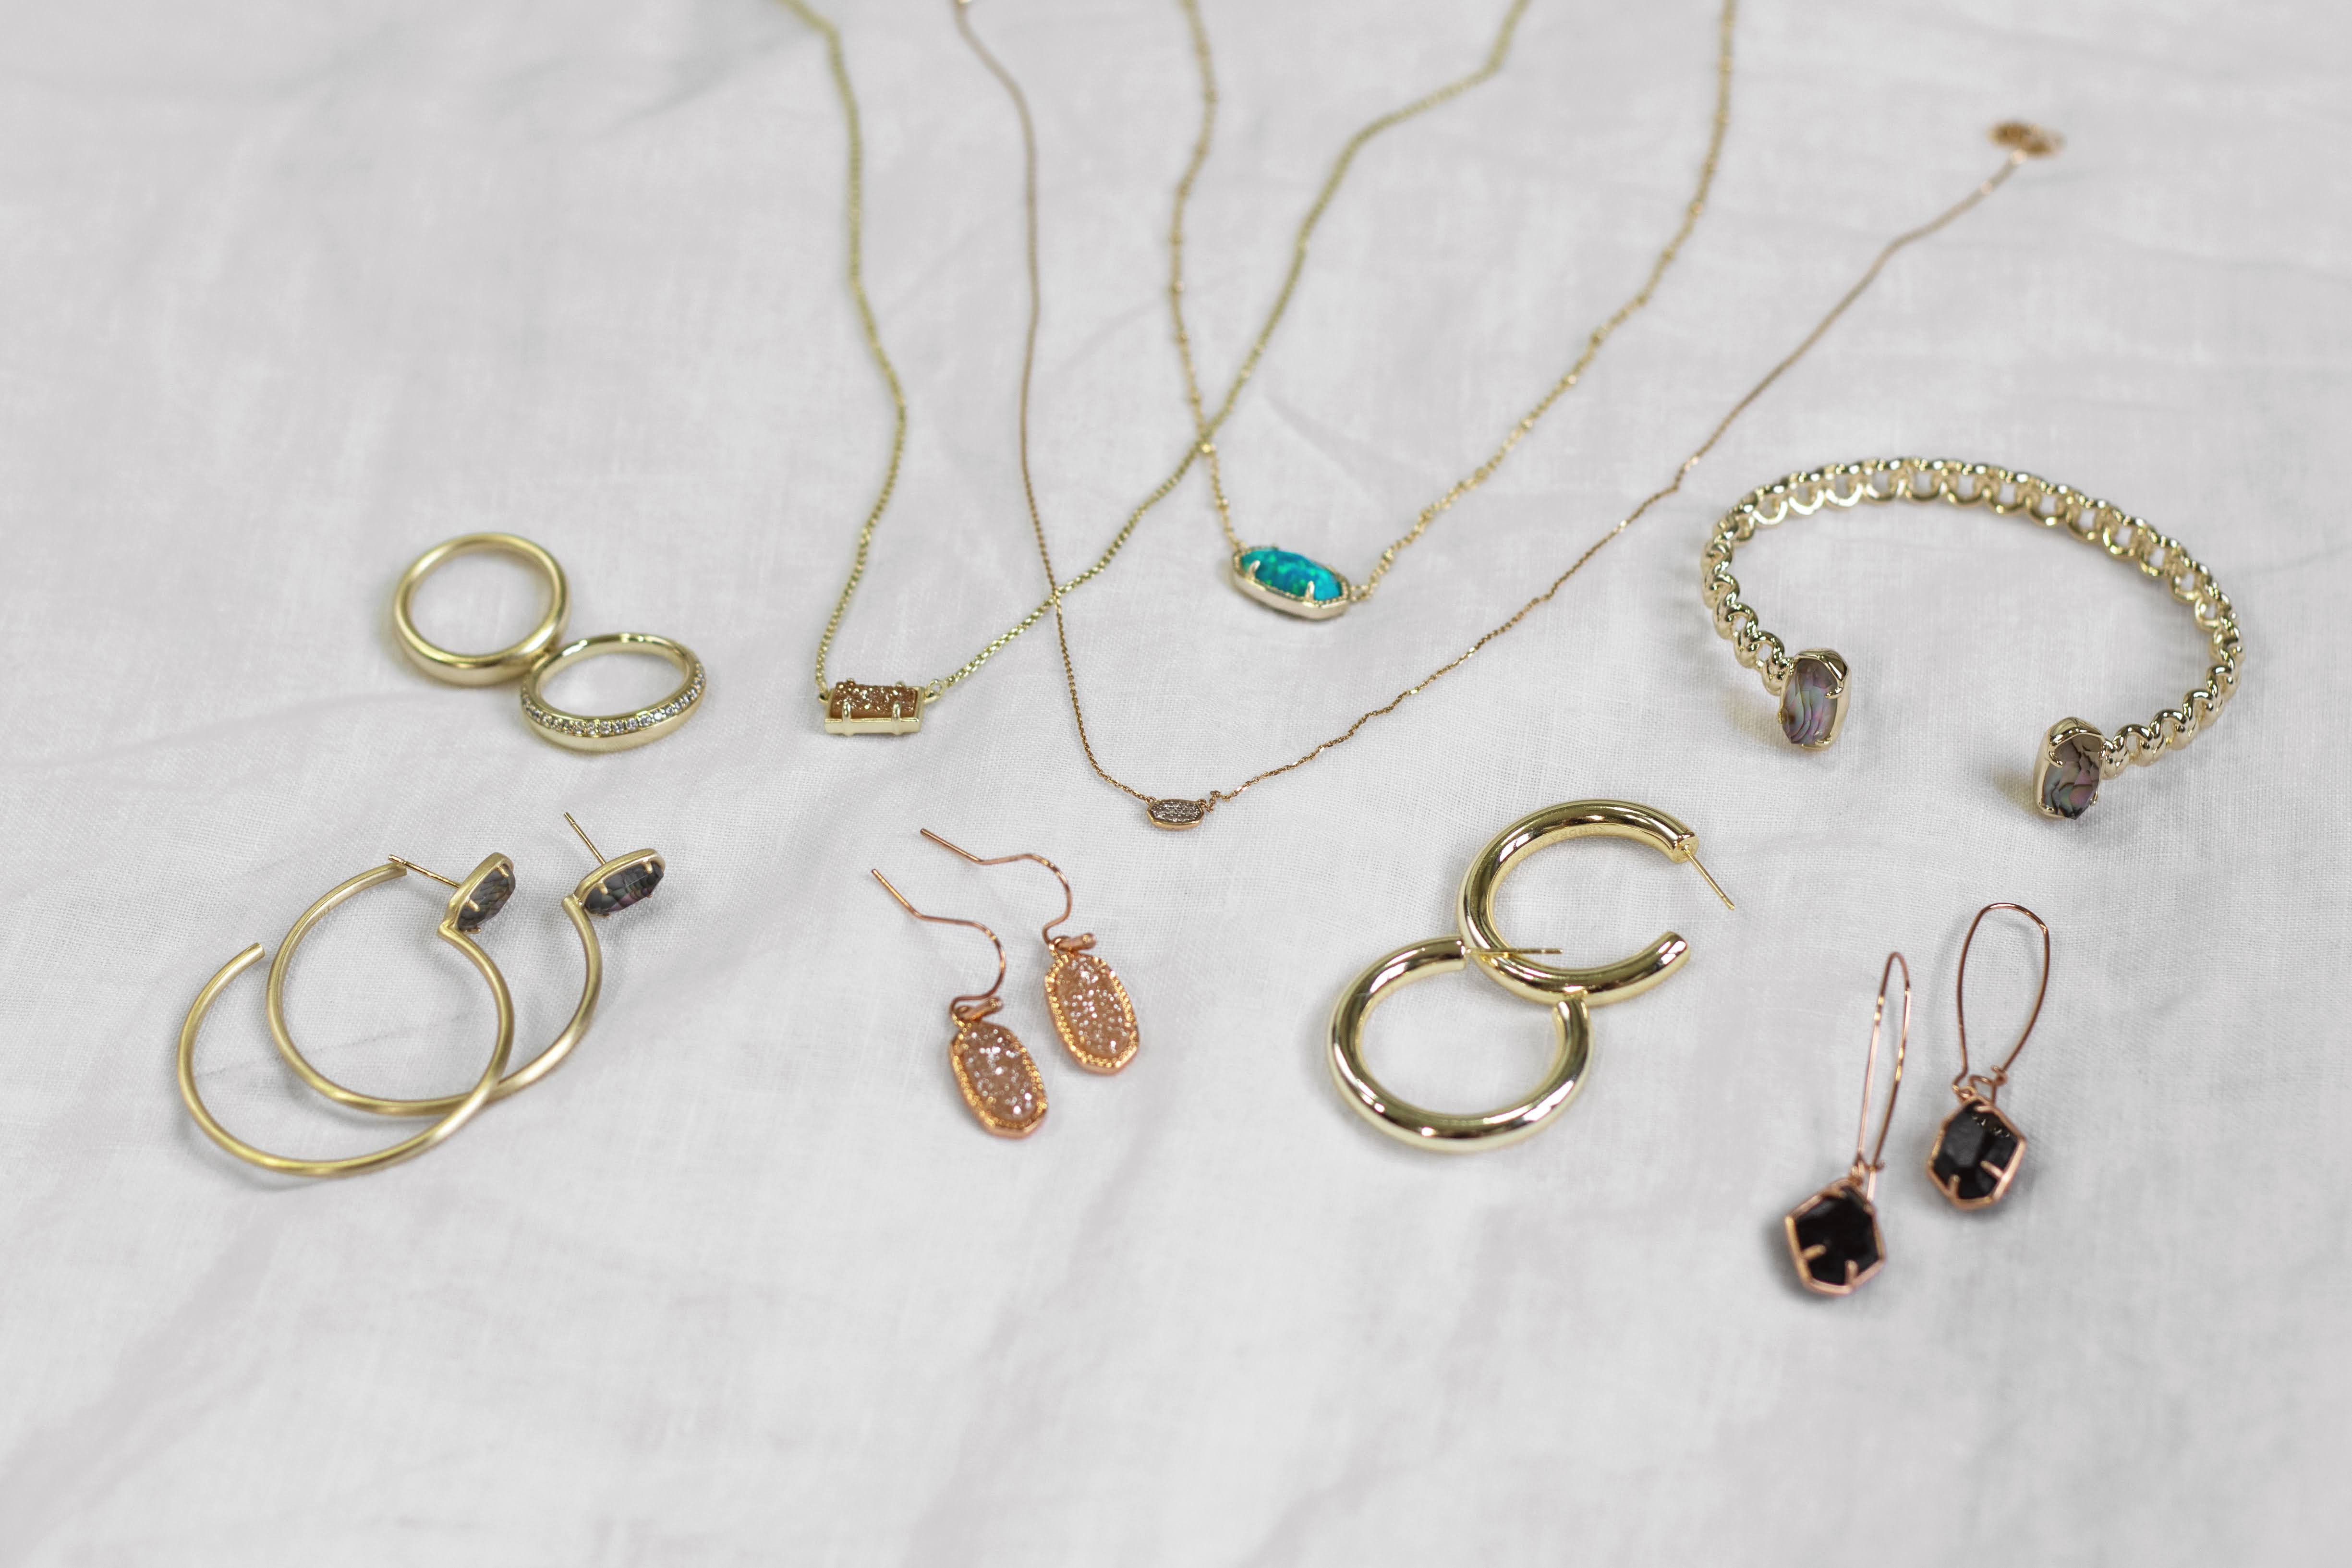 My Kendra Scott Collection + Favorite Pieces